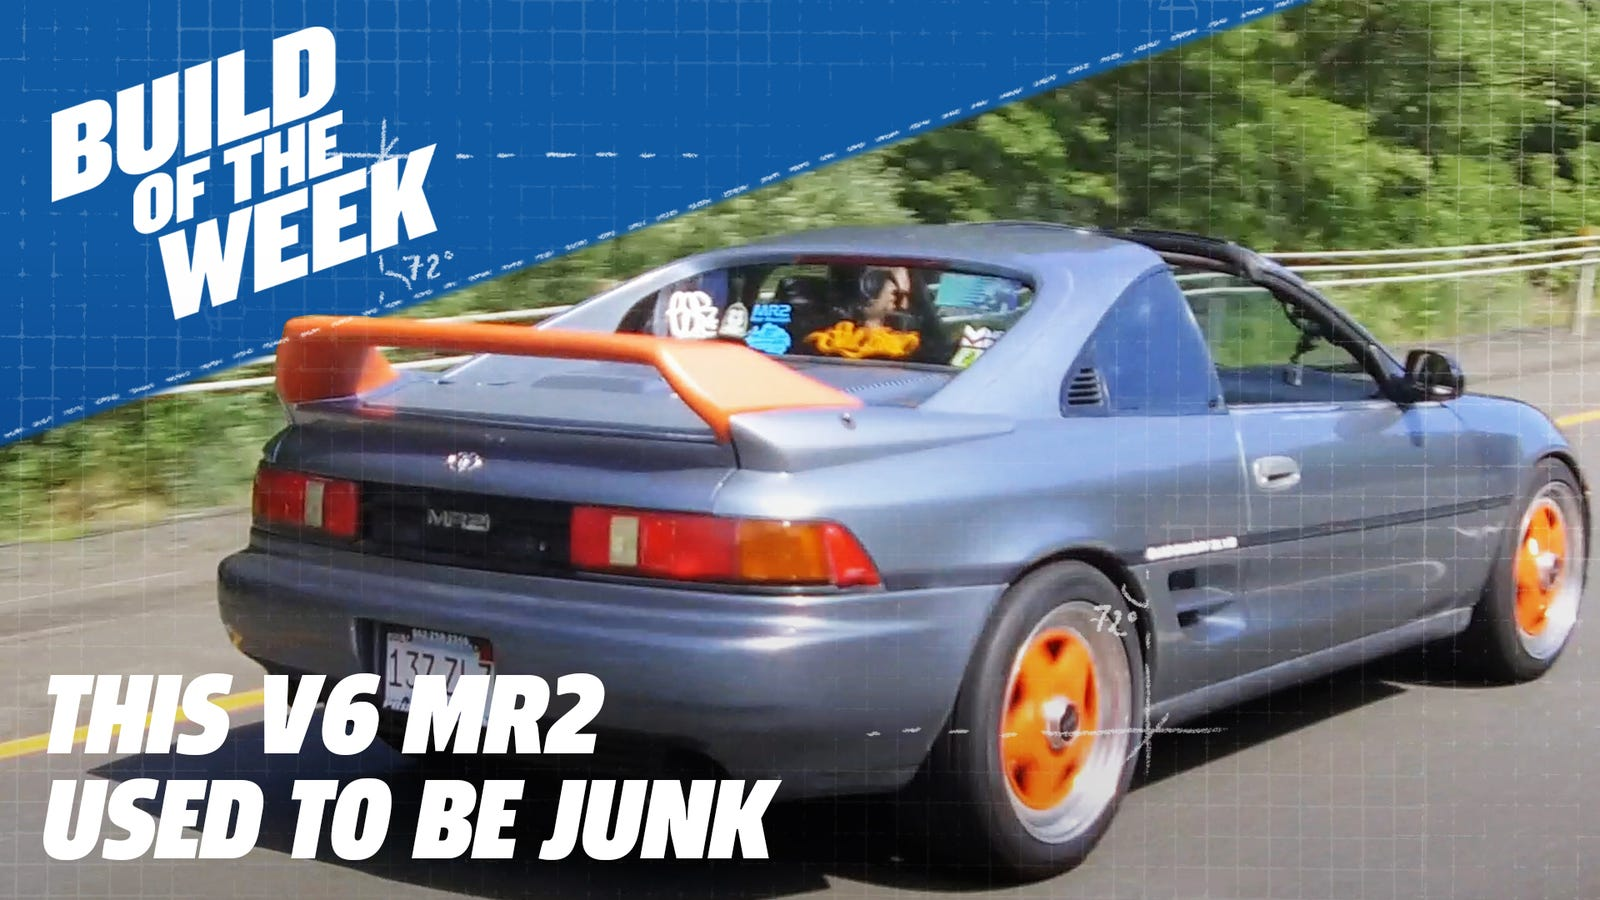 This Toyota MR2 Was Almost Scrapped But a JDM V6 Swap Made